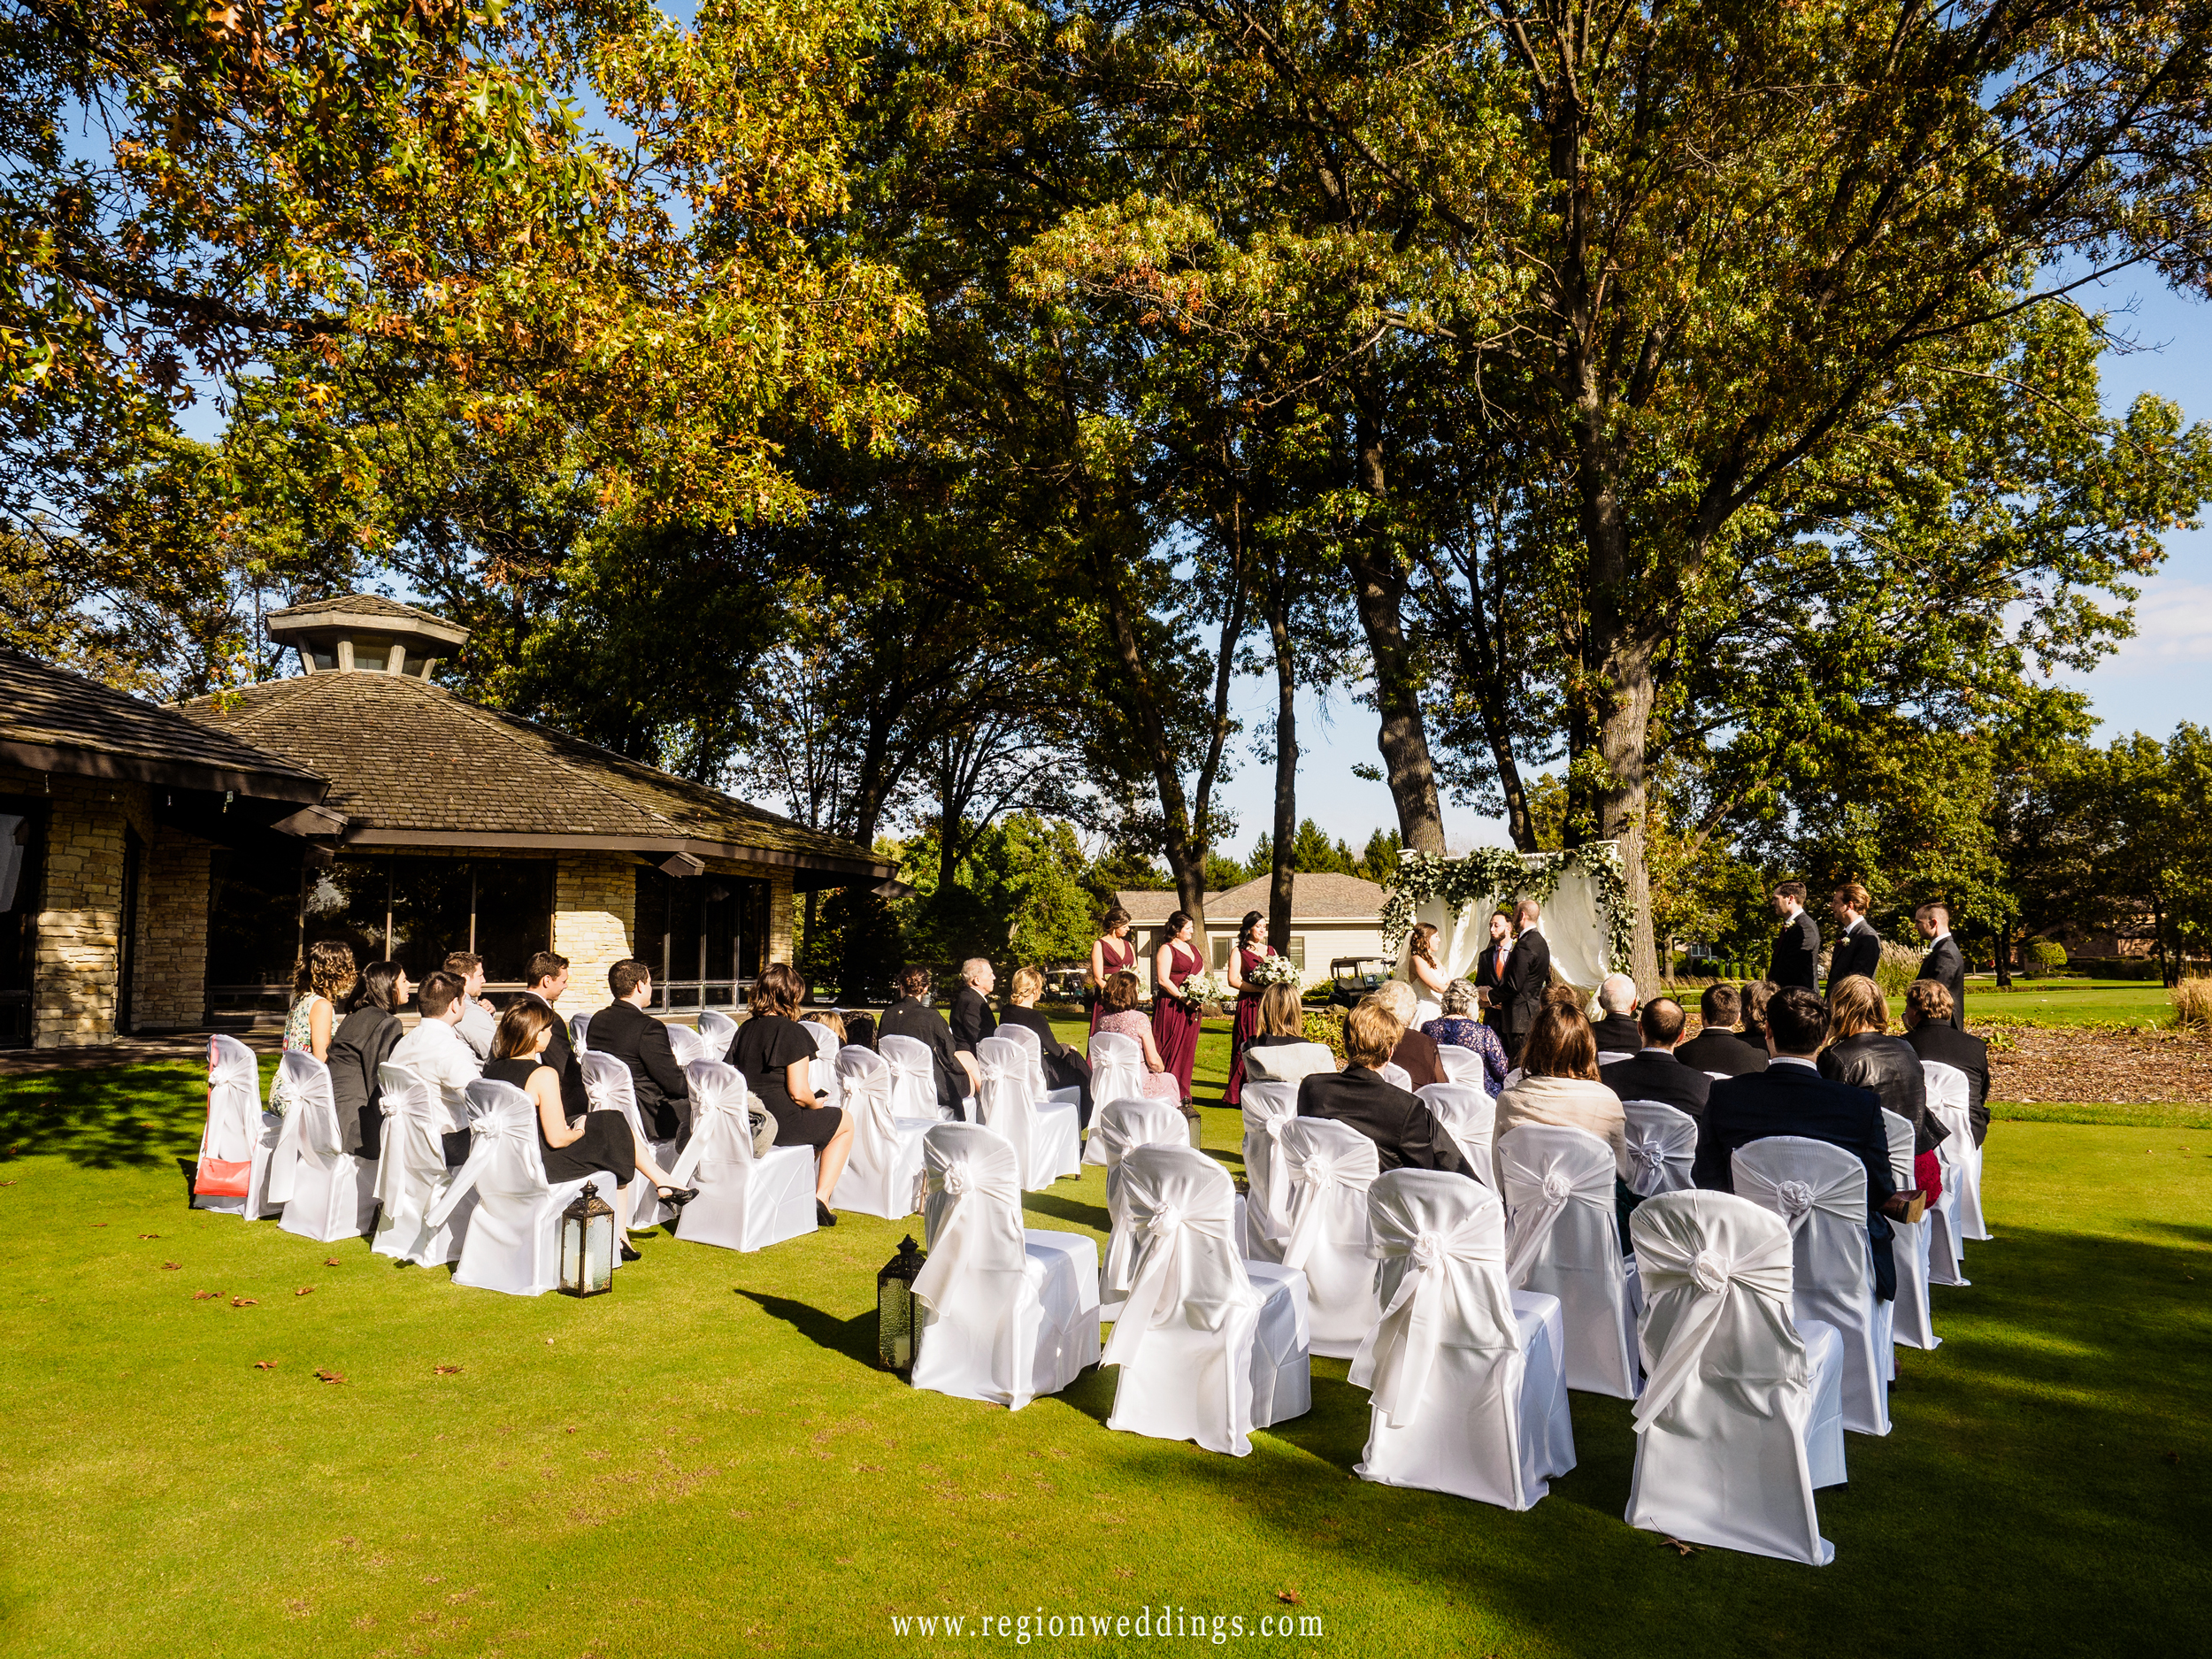 Outdoor wedding at Briar Ridge Country Club.